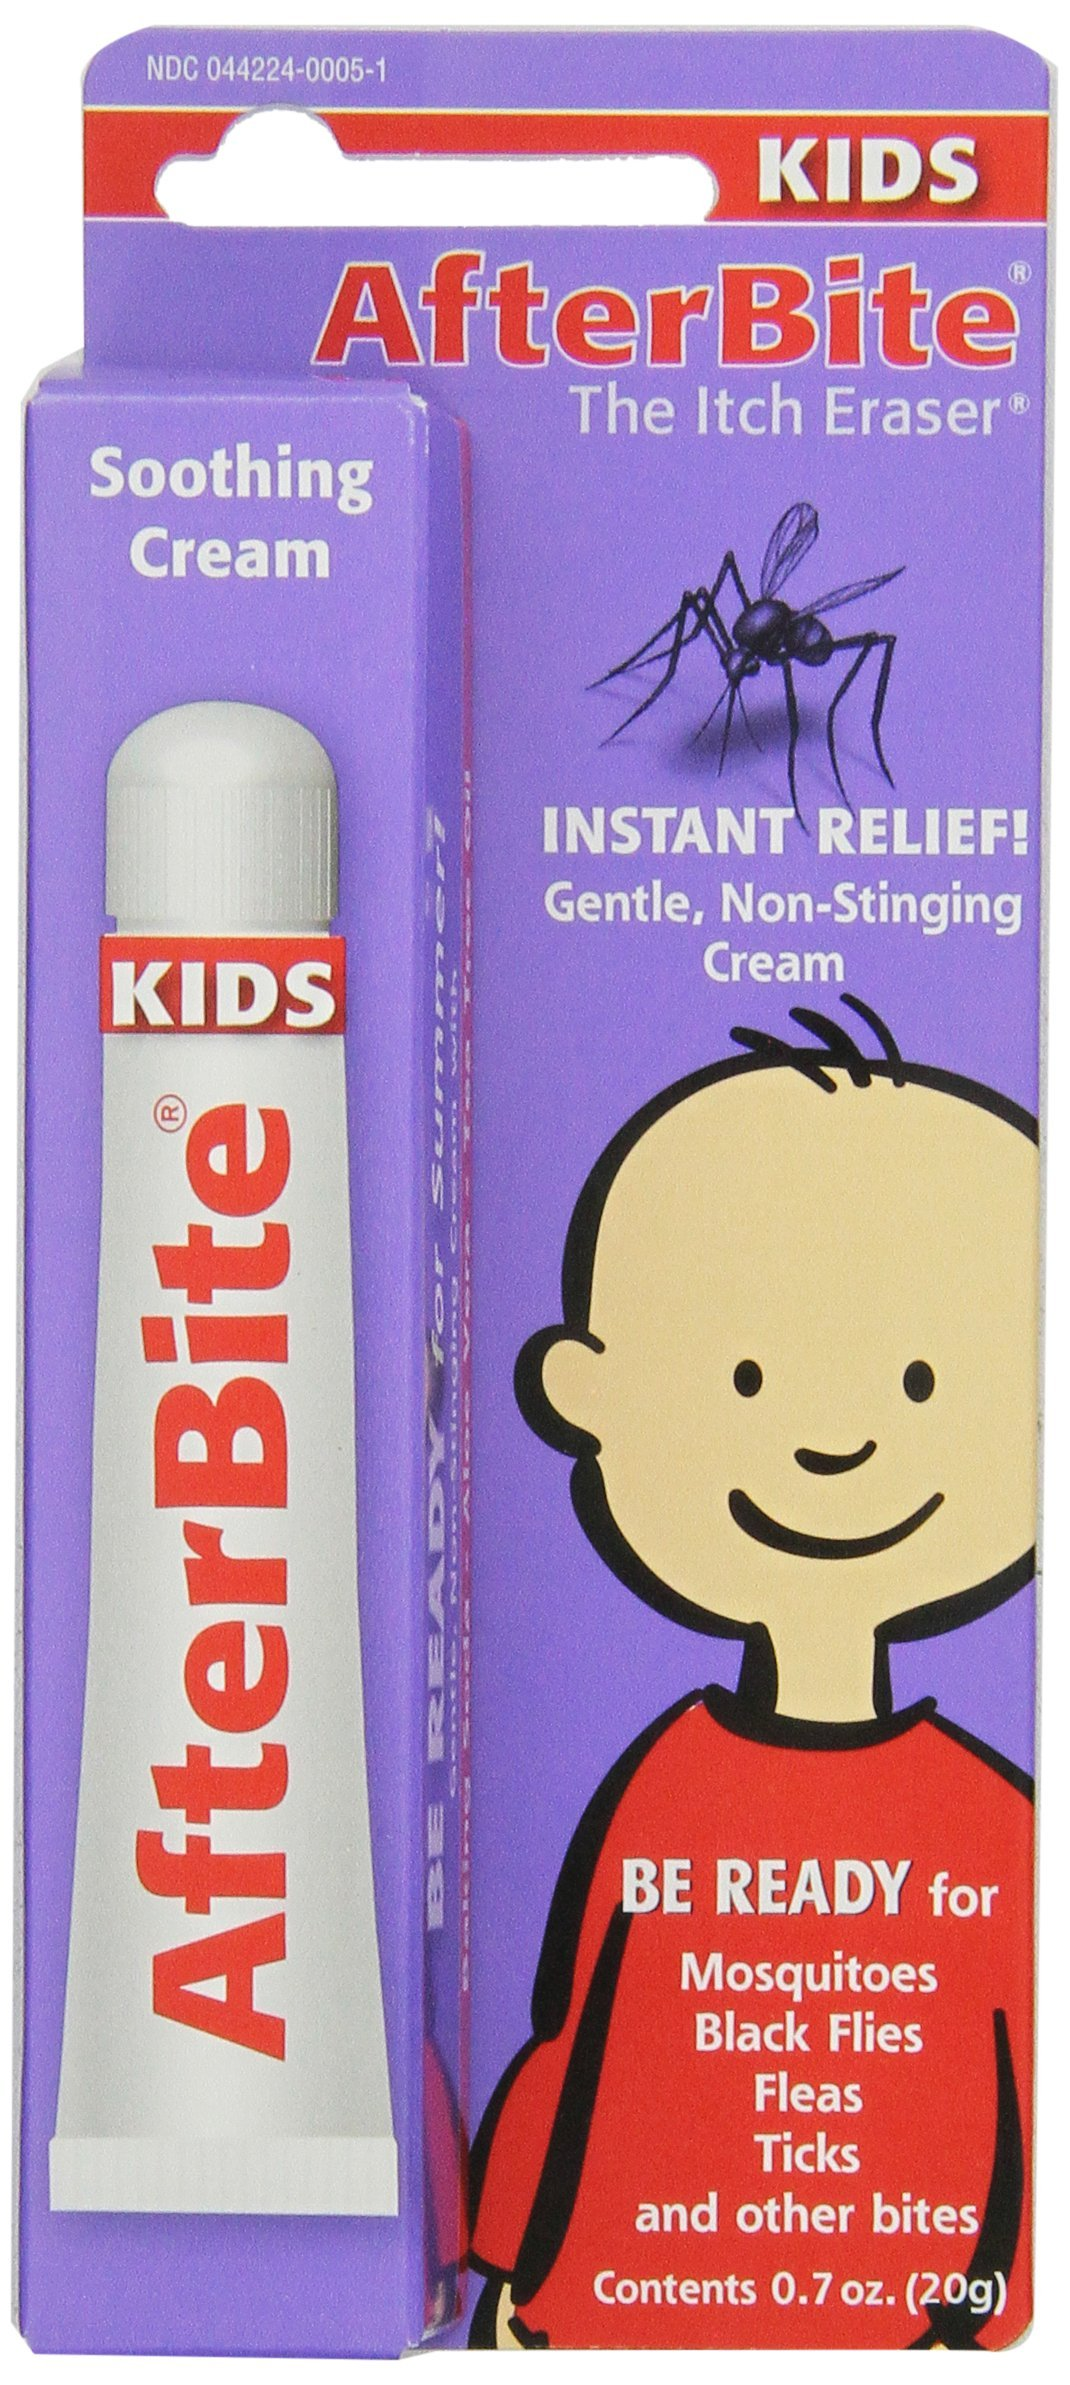 After Bite The Itch Eraser Soothing Cream For Kids 0.7 Oz (Pack of 6)